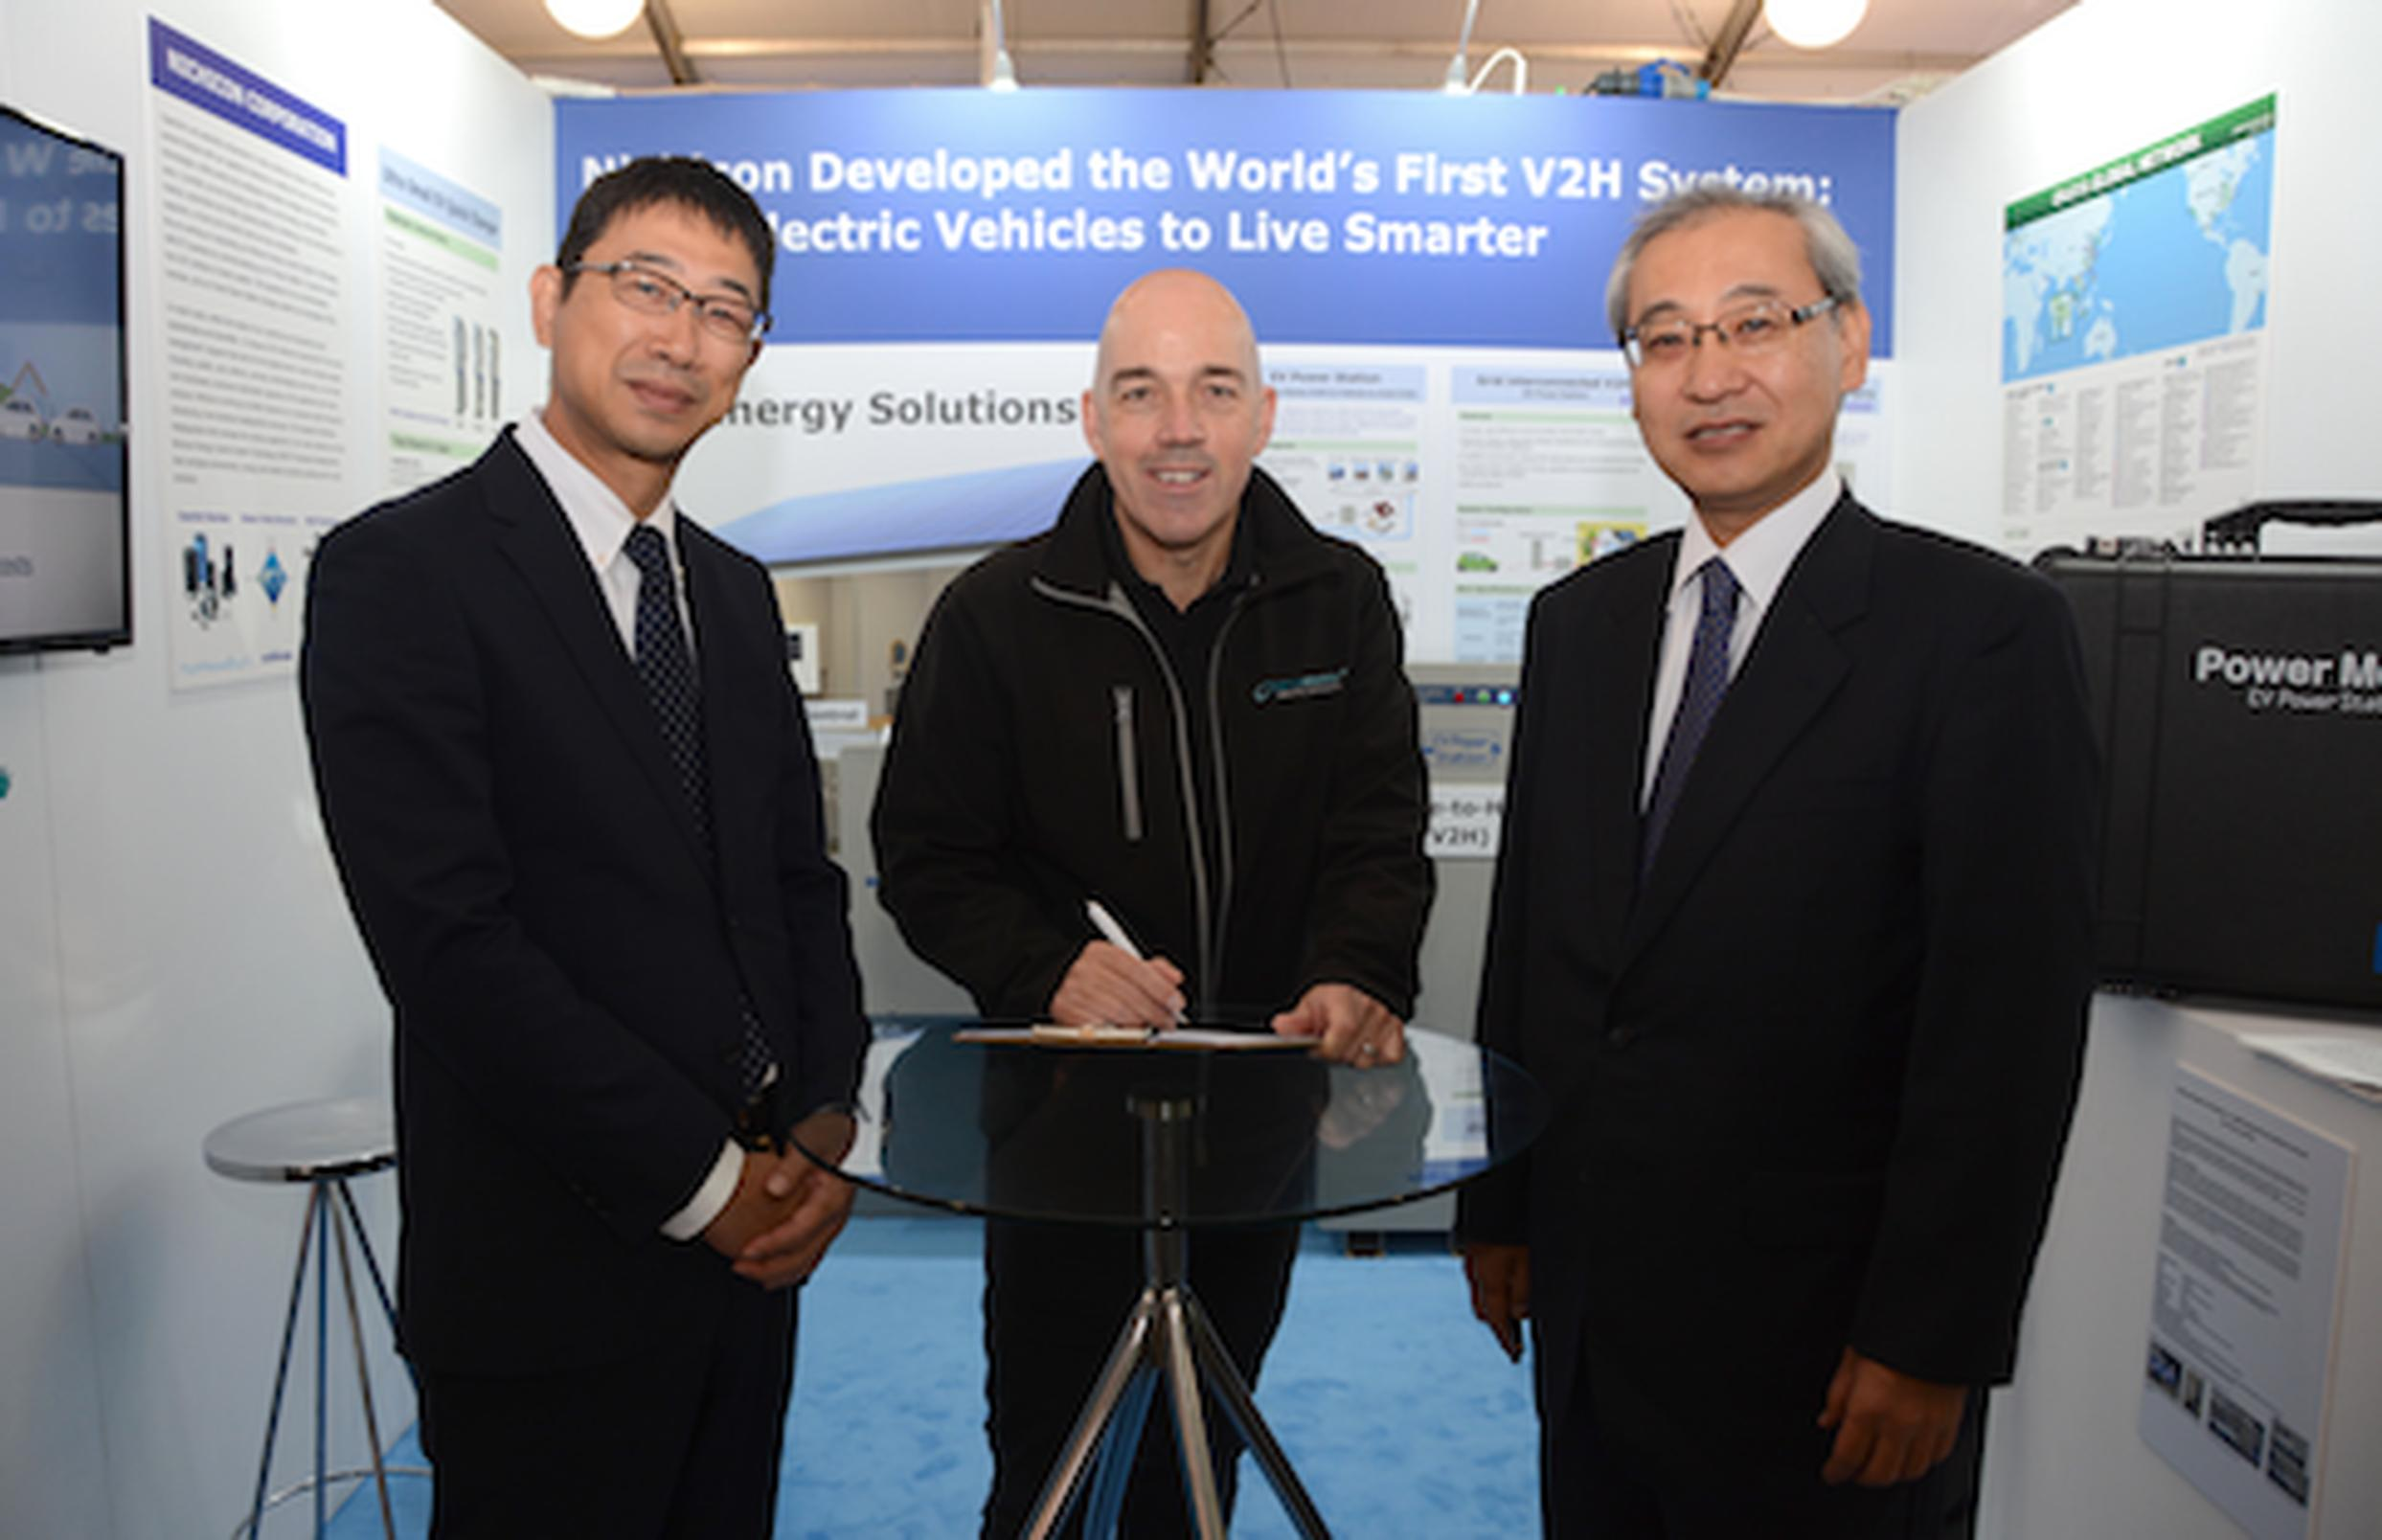 Mike Potter from DriveElectric signing a MOU for V2G chargers with Masahiro Ishiyama, senior general manager, and Hiroshi Seki, business group leader, Nichicon Corporation at LCV2017